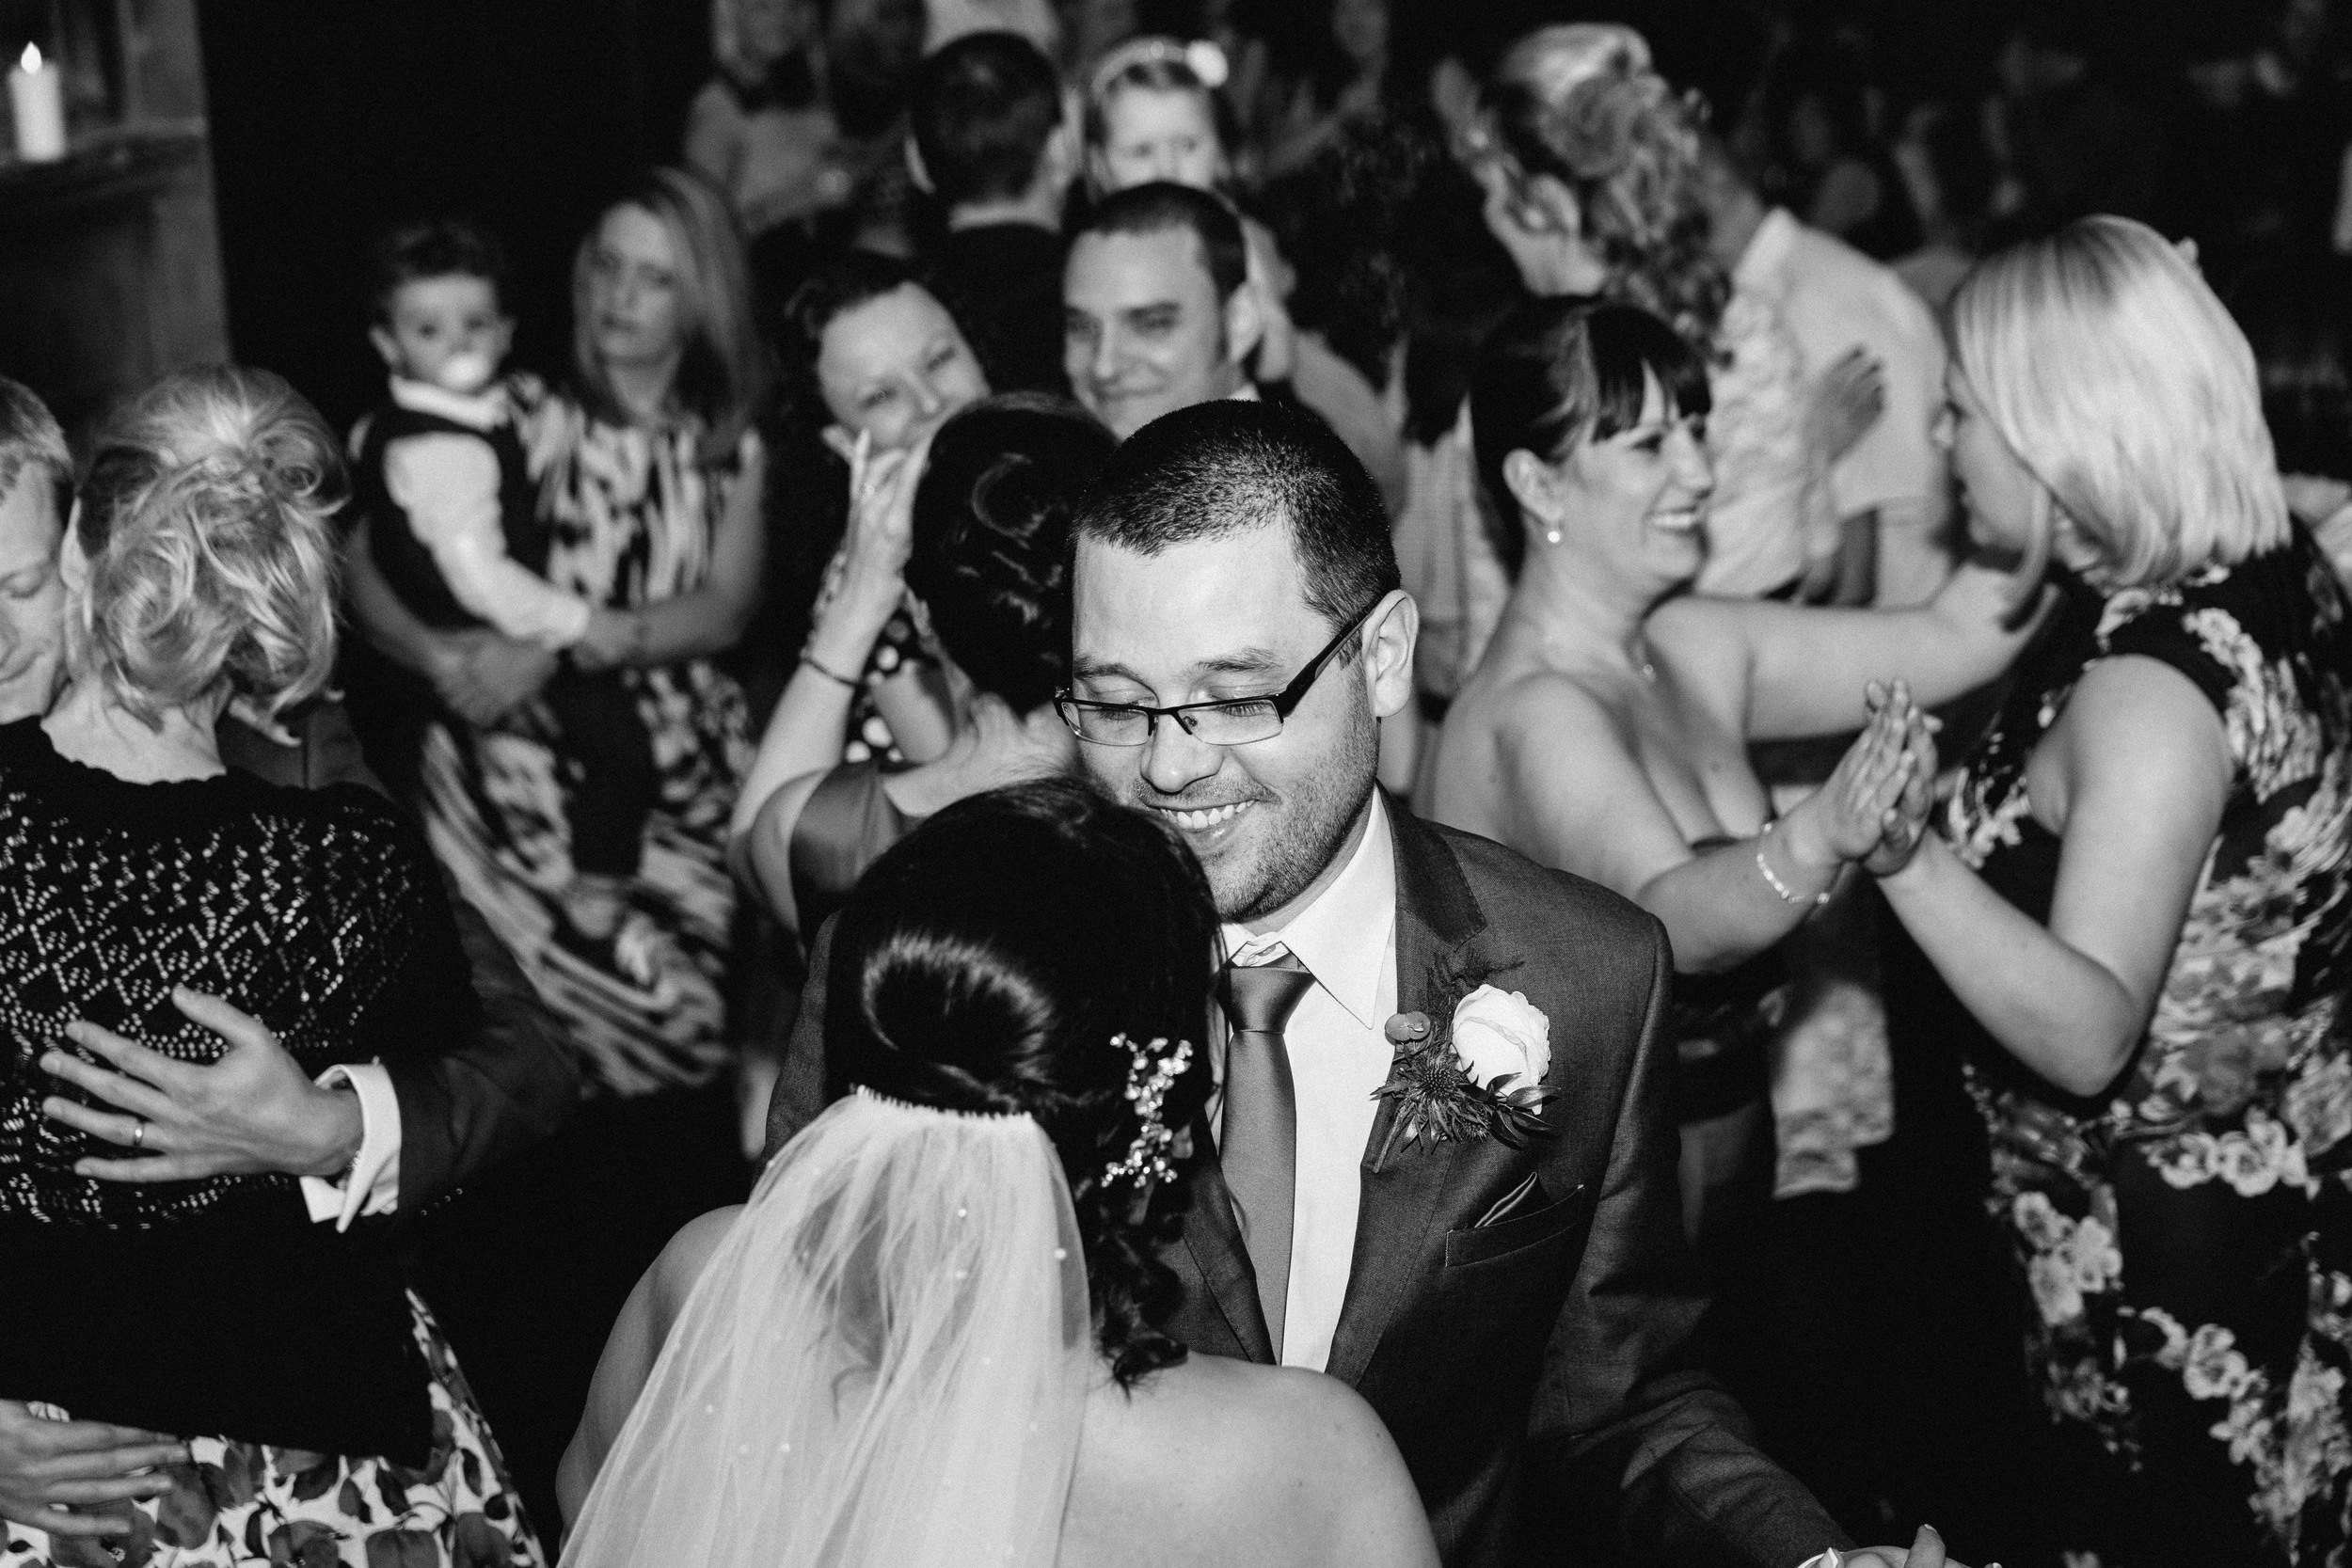 Durham Wedding Photographer - Bride and groom first dance